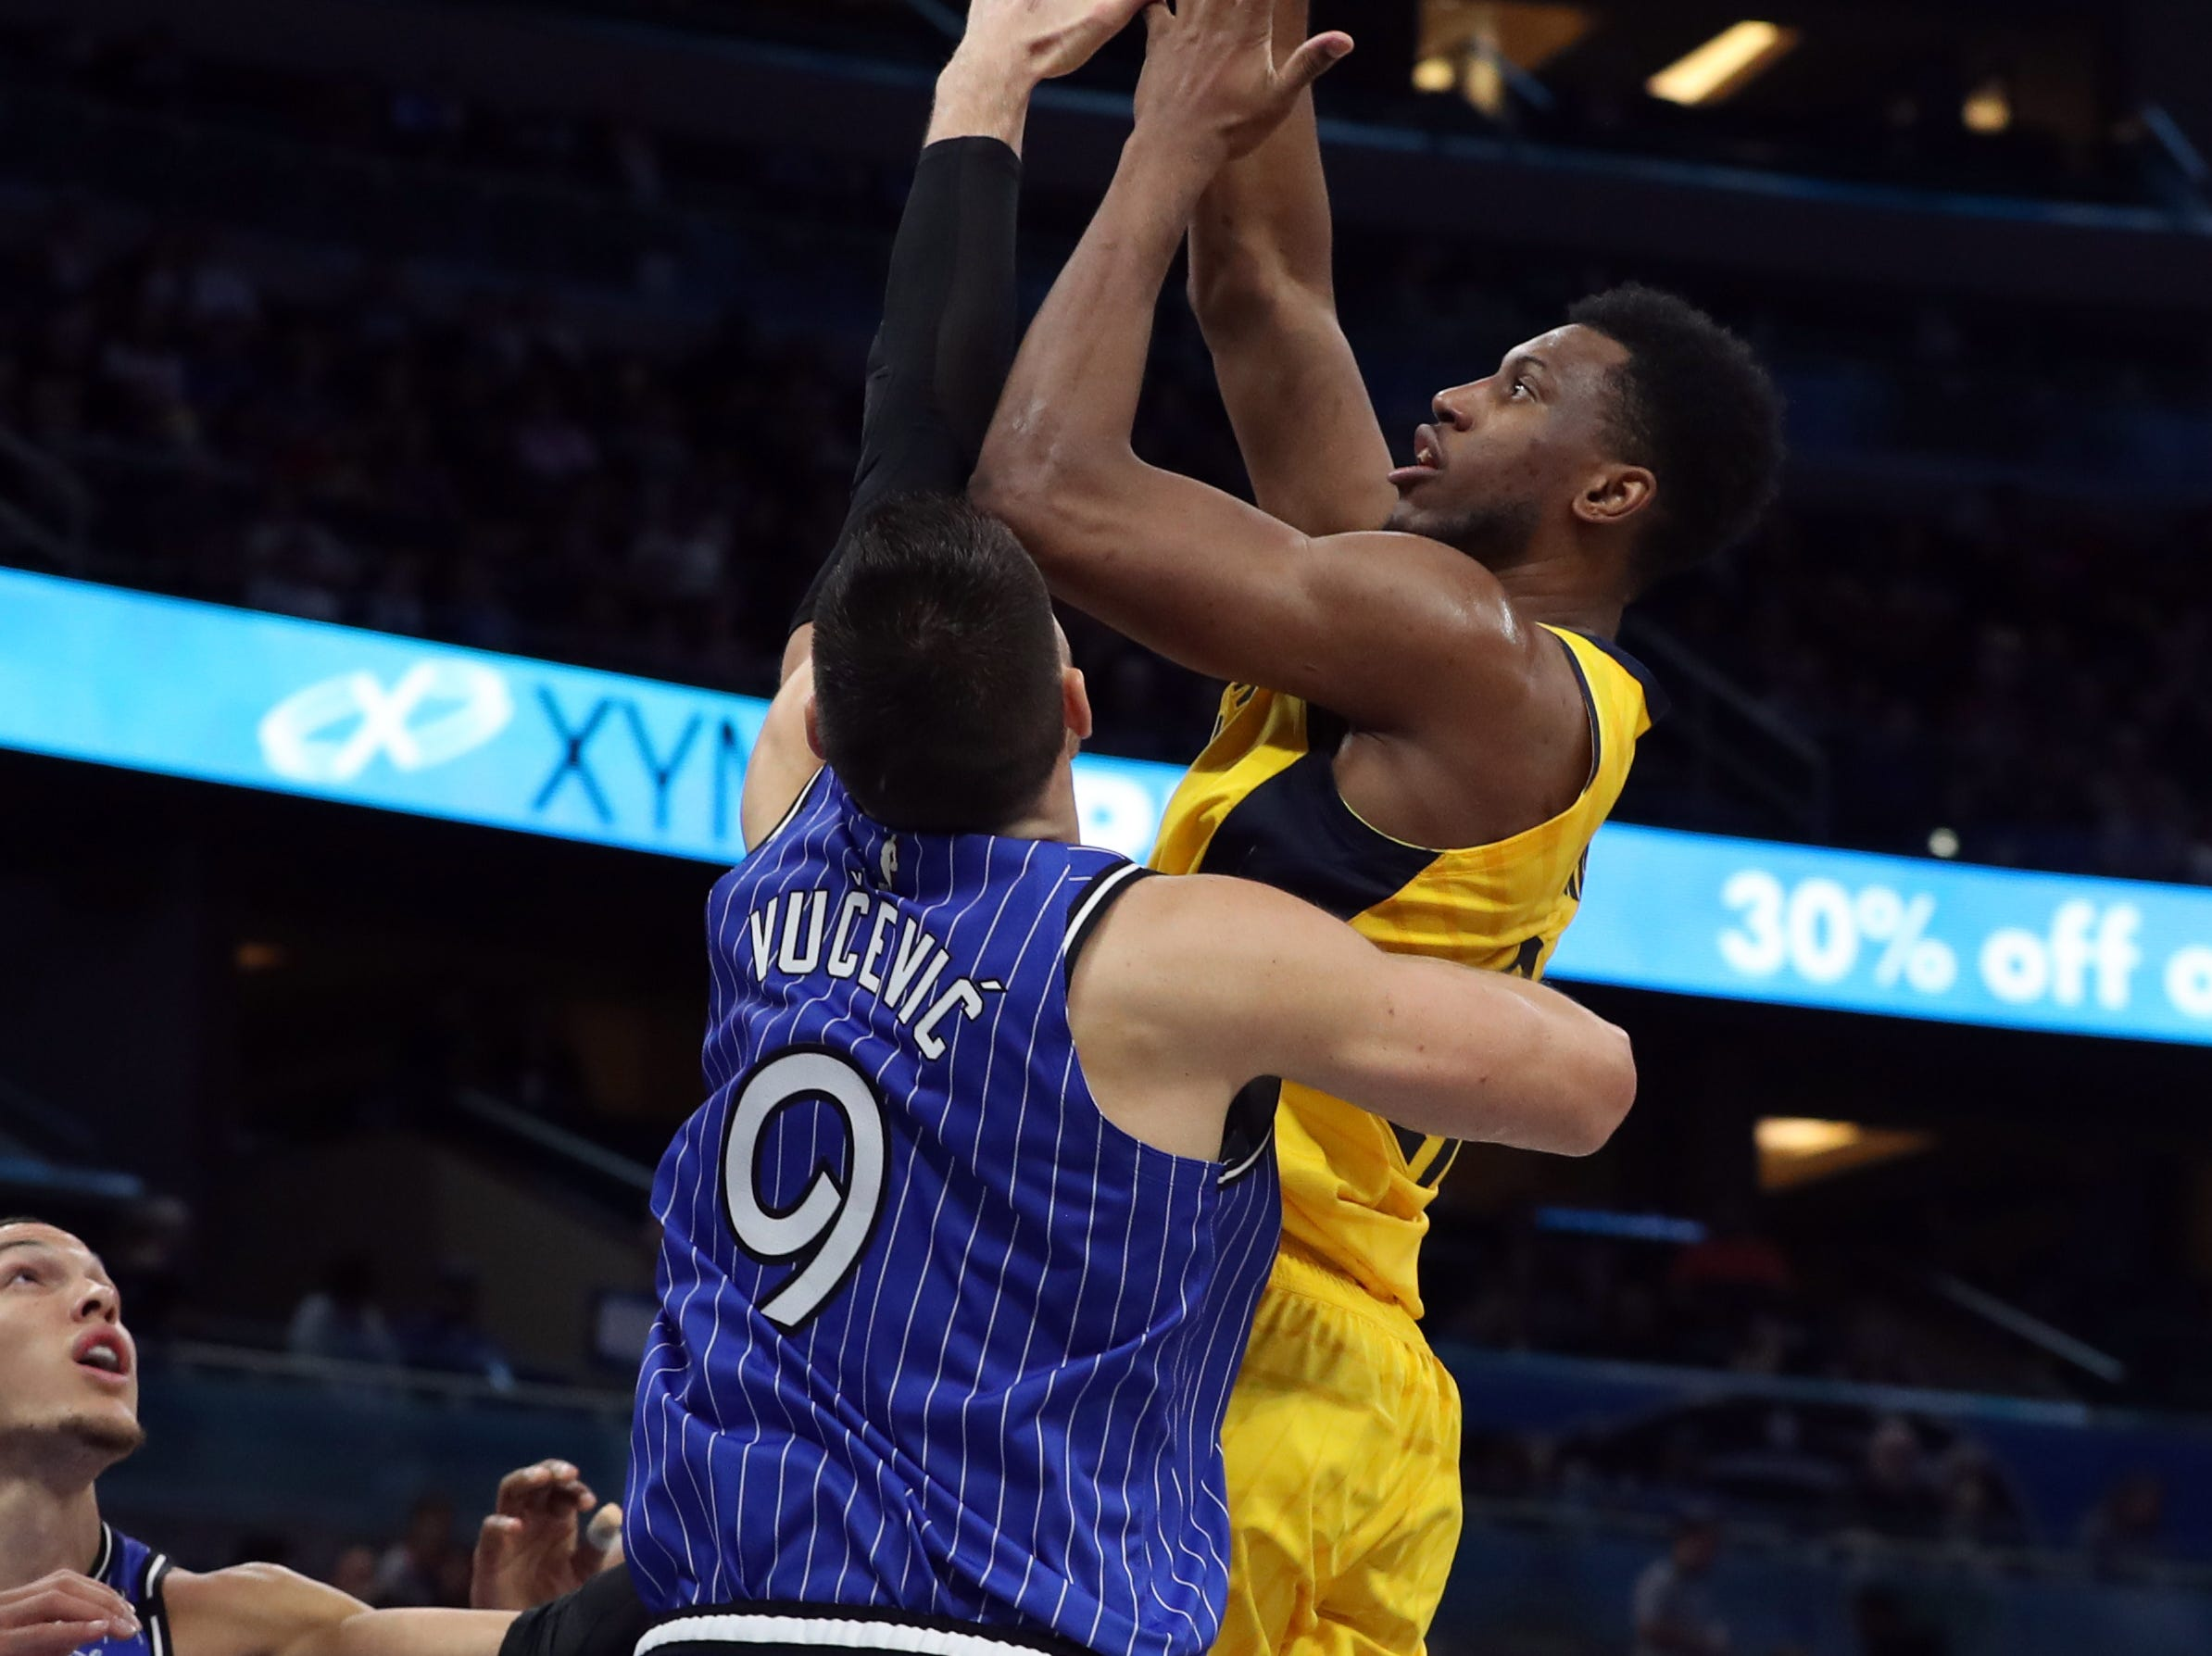 Dec 7, 2018; Orlando, FL, USA; Indiana Pacers forward Thaddeus Young (21) shoots over Orlando Magic center Nikola Vucevic (9) during the second quarter at Amway Center. Mandatory Credit: Kim Klement-USA TODAY Sports